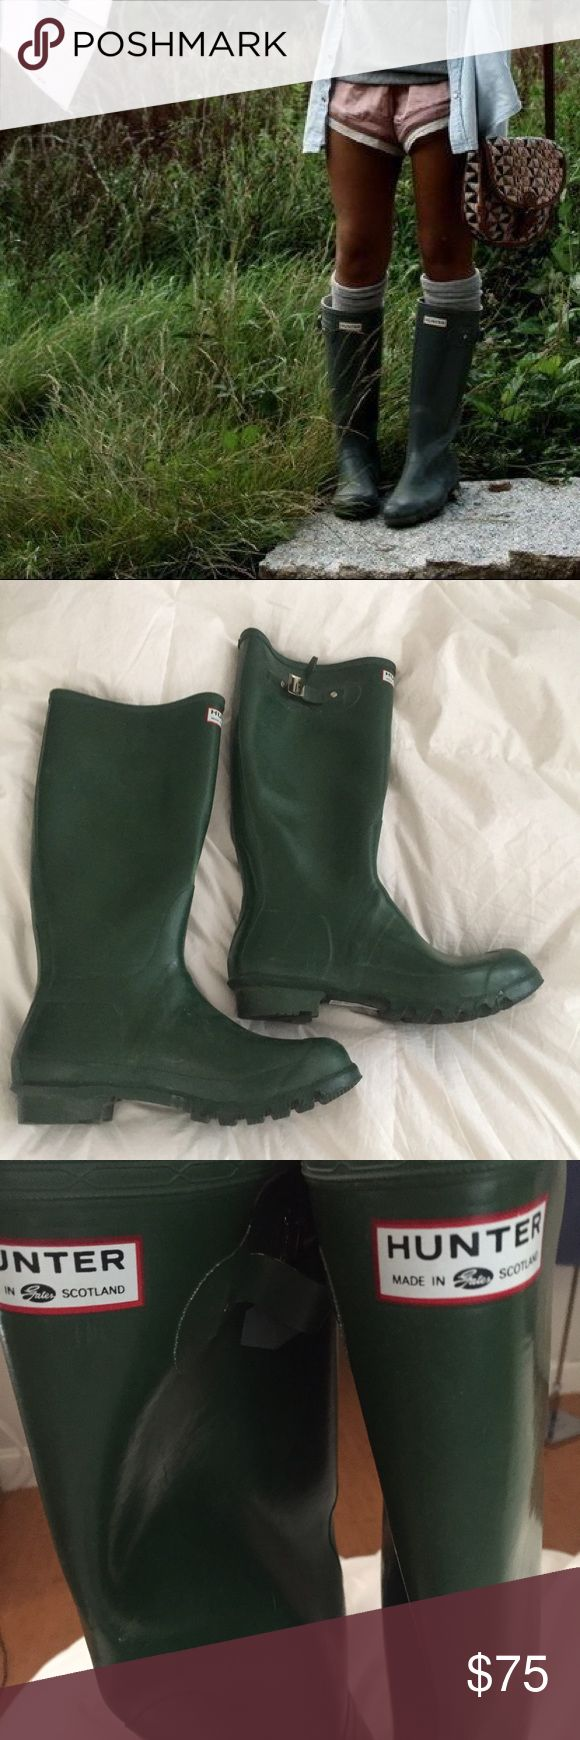 Hunter Original Green Rain boots women 12 men's 11 This is a pair of Hunter Boots. The original green wellies. They are in great condition. Size is womens 12 or a men's 11. Can be worn by either. Hunter Boots Shoes Winter & Rain Boots